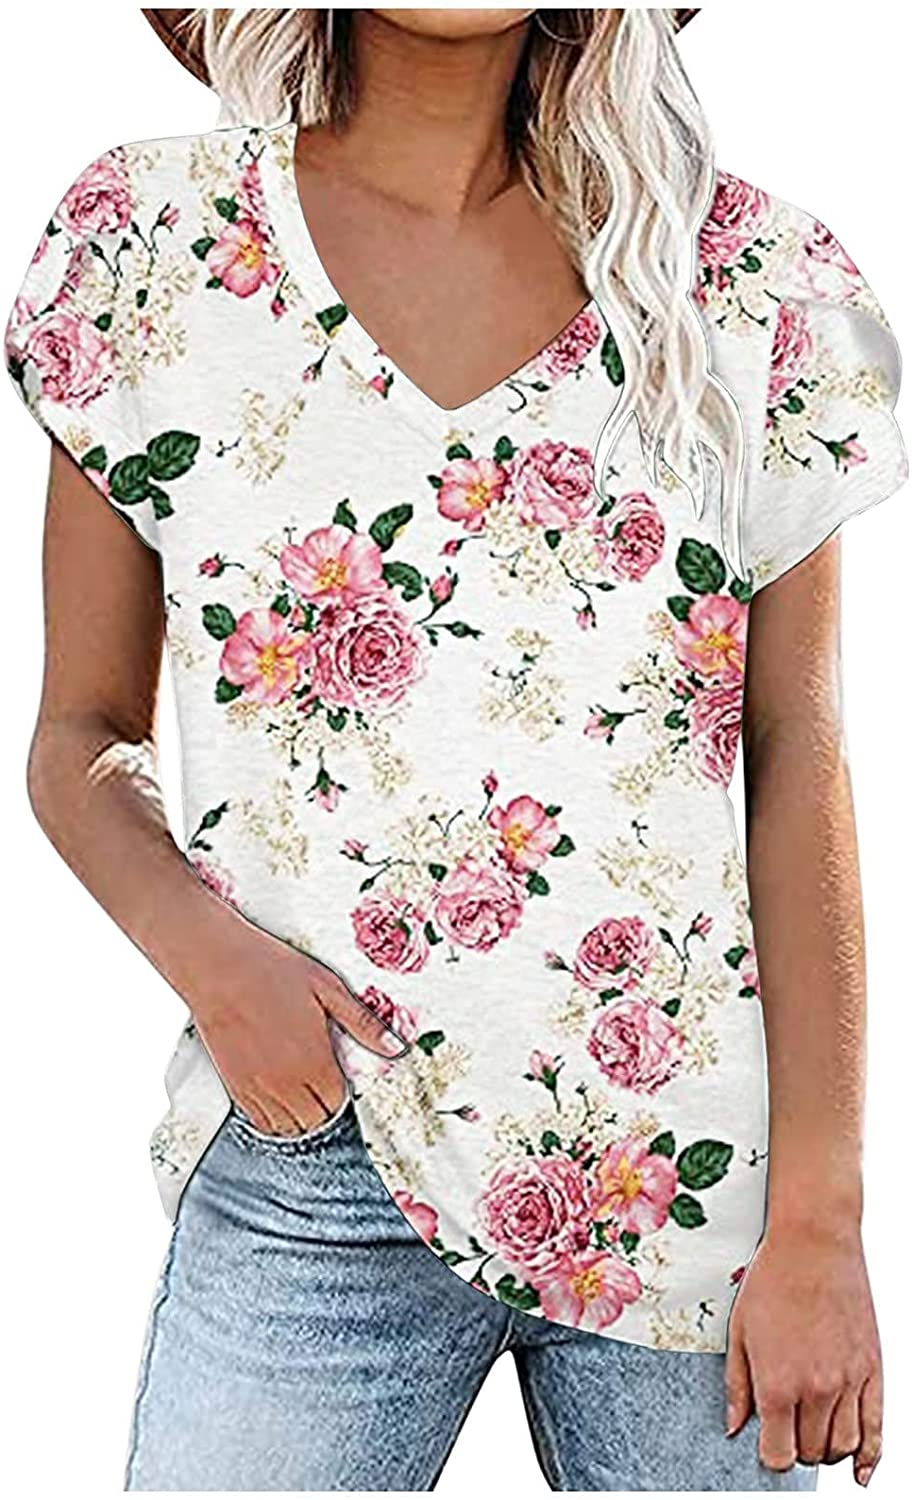 Womens Lace-up Loose Casual Tops V Neck Summer Petal Sleeve T-Shirts Short Sleeves Blouse